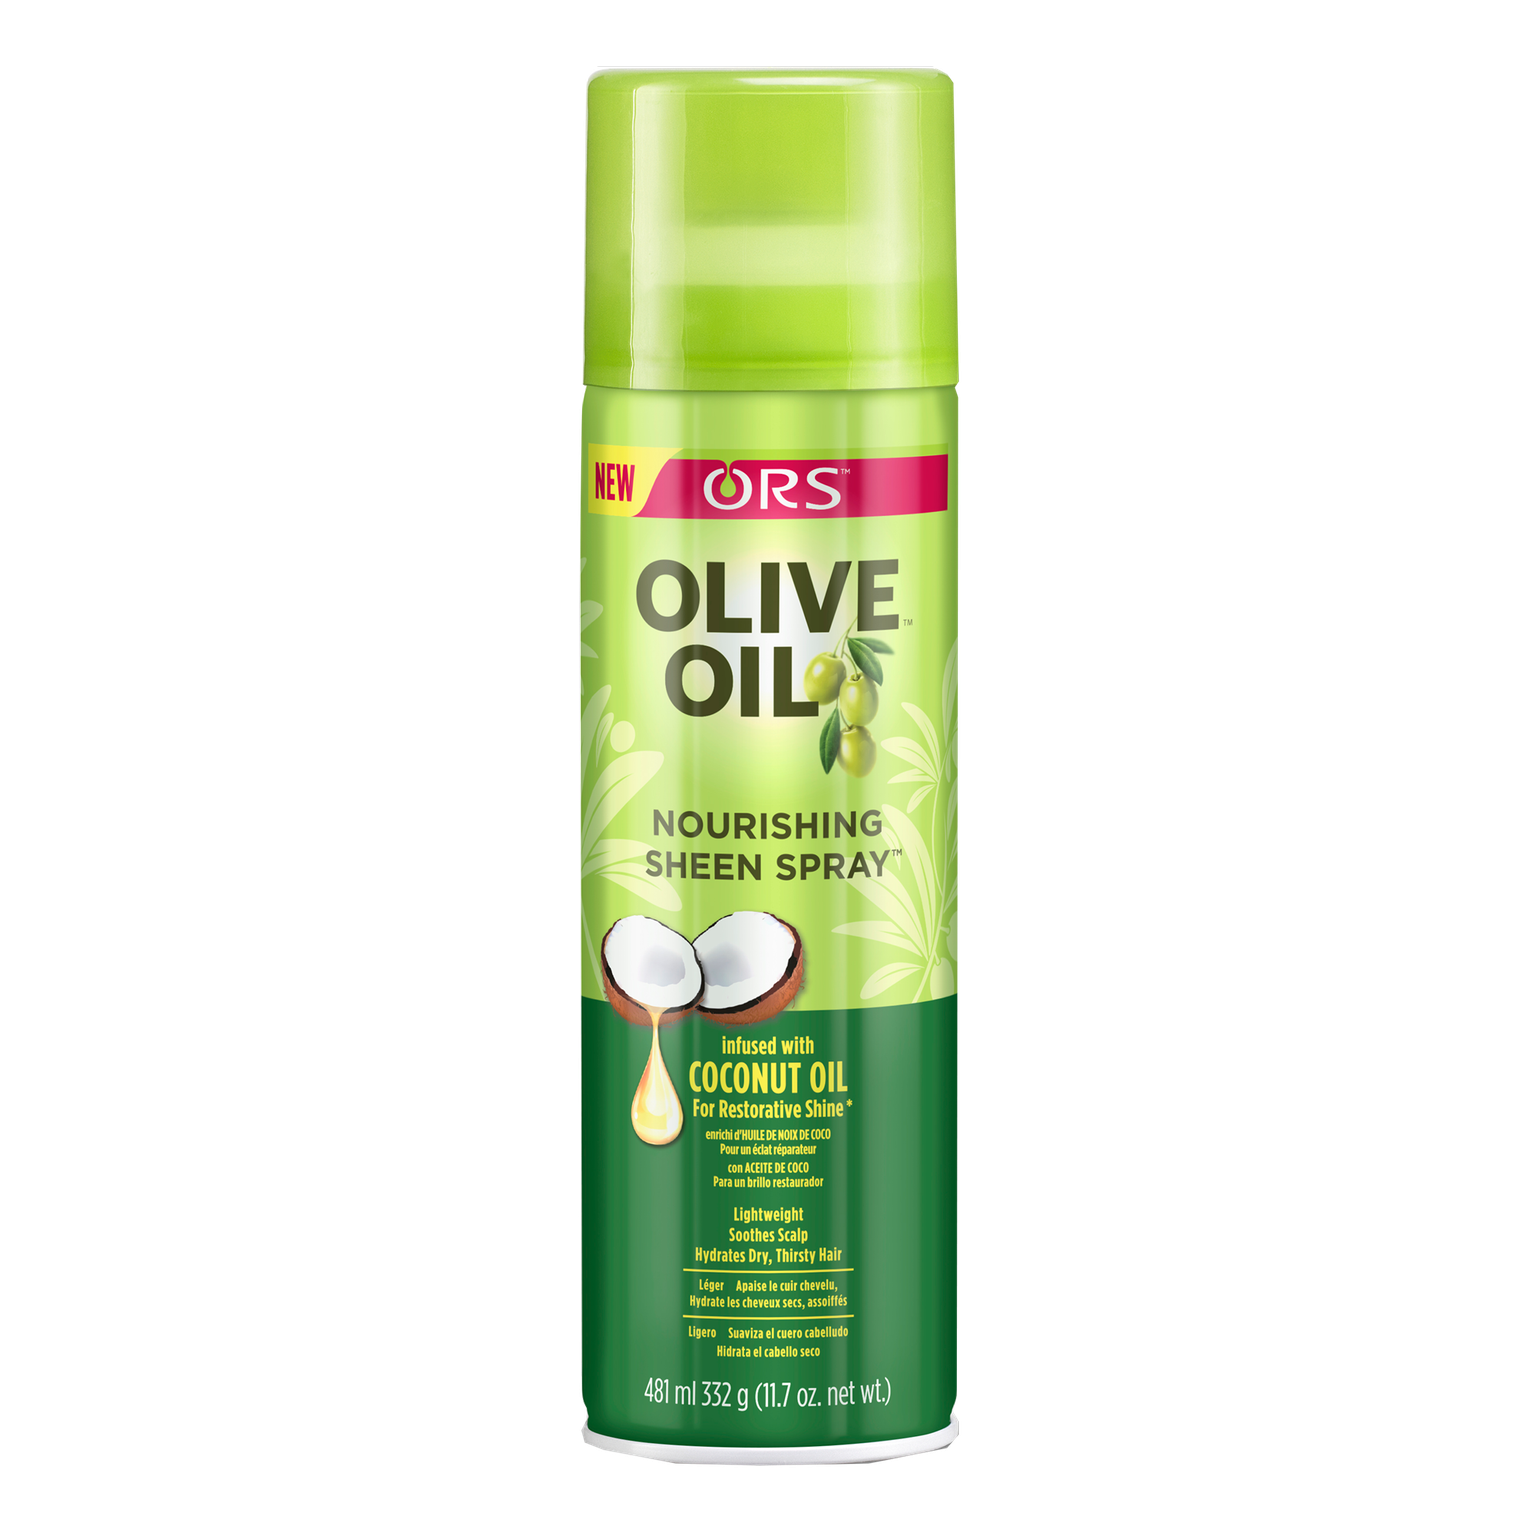 ORS Olive Oil Nourishing Sheen Spray 481ml